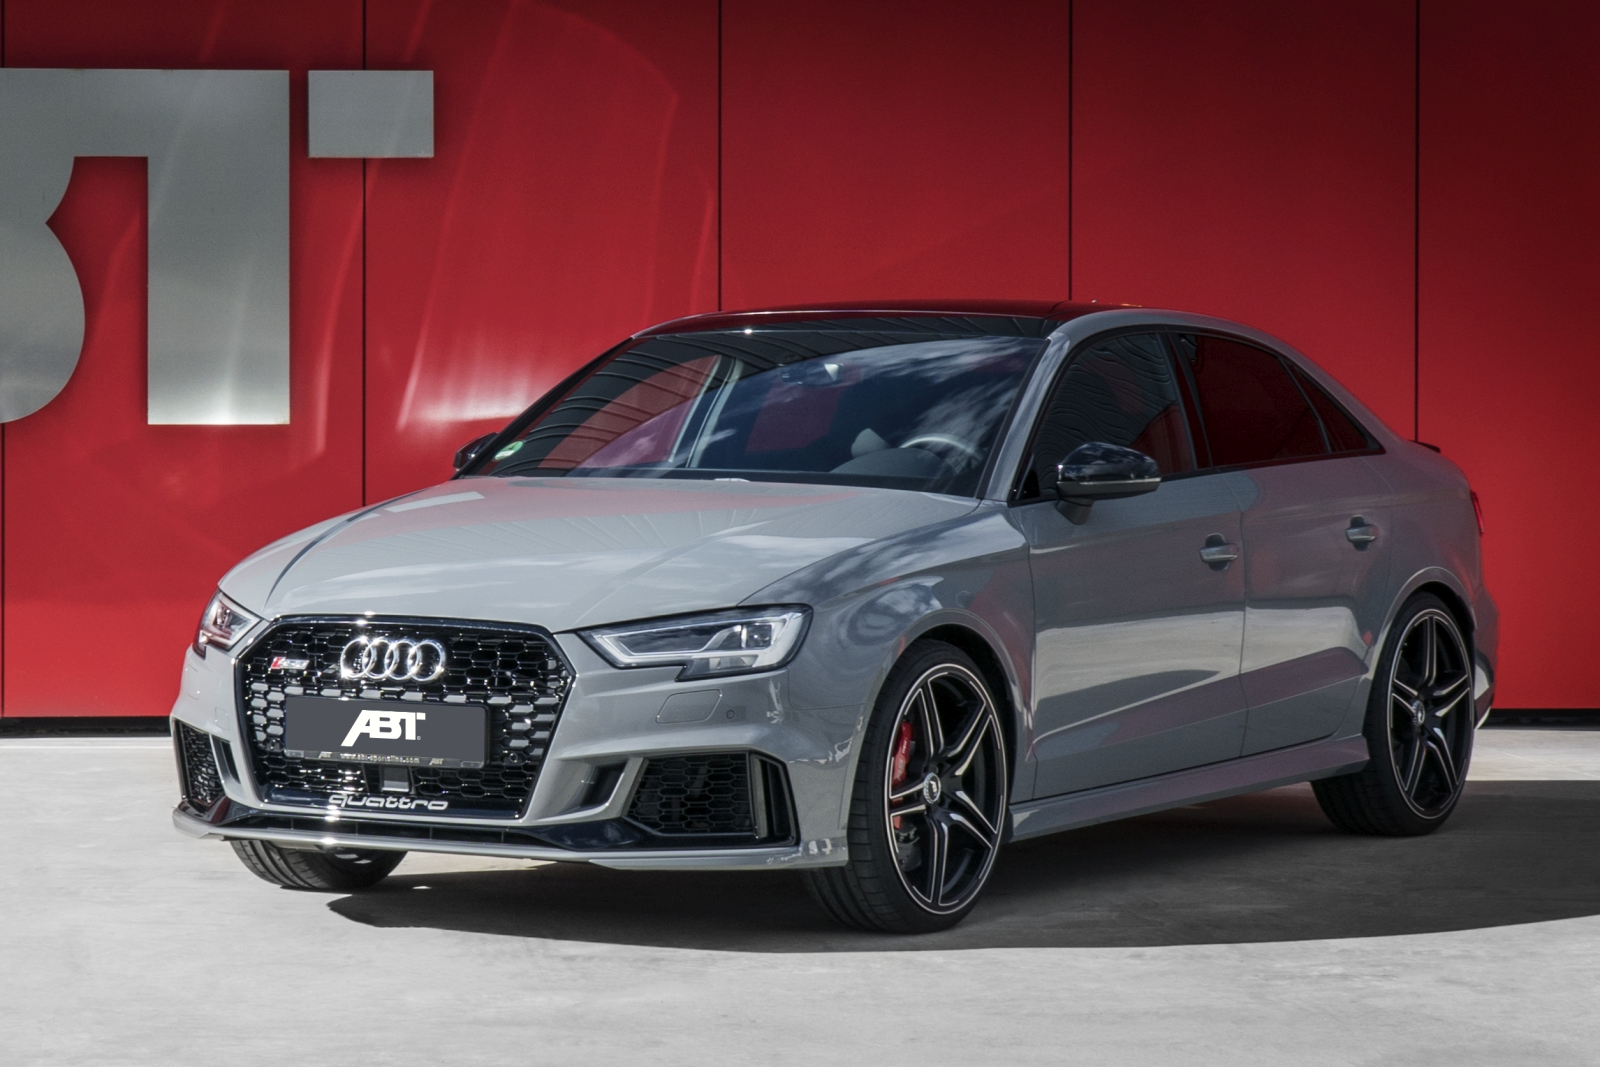 ABT_RS3_Limousine_small_package_ABT_FR